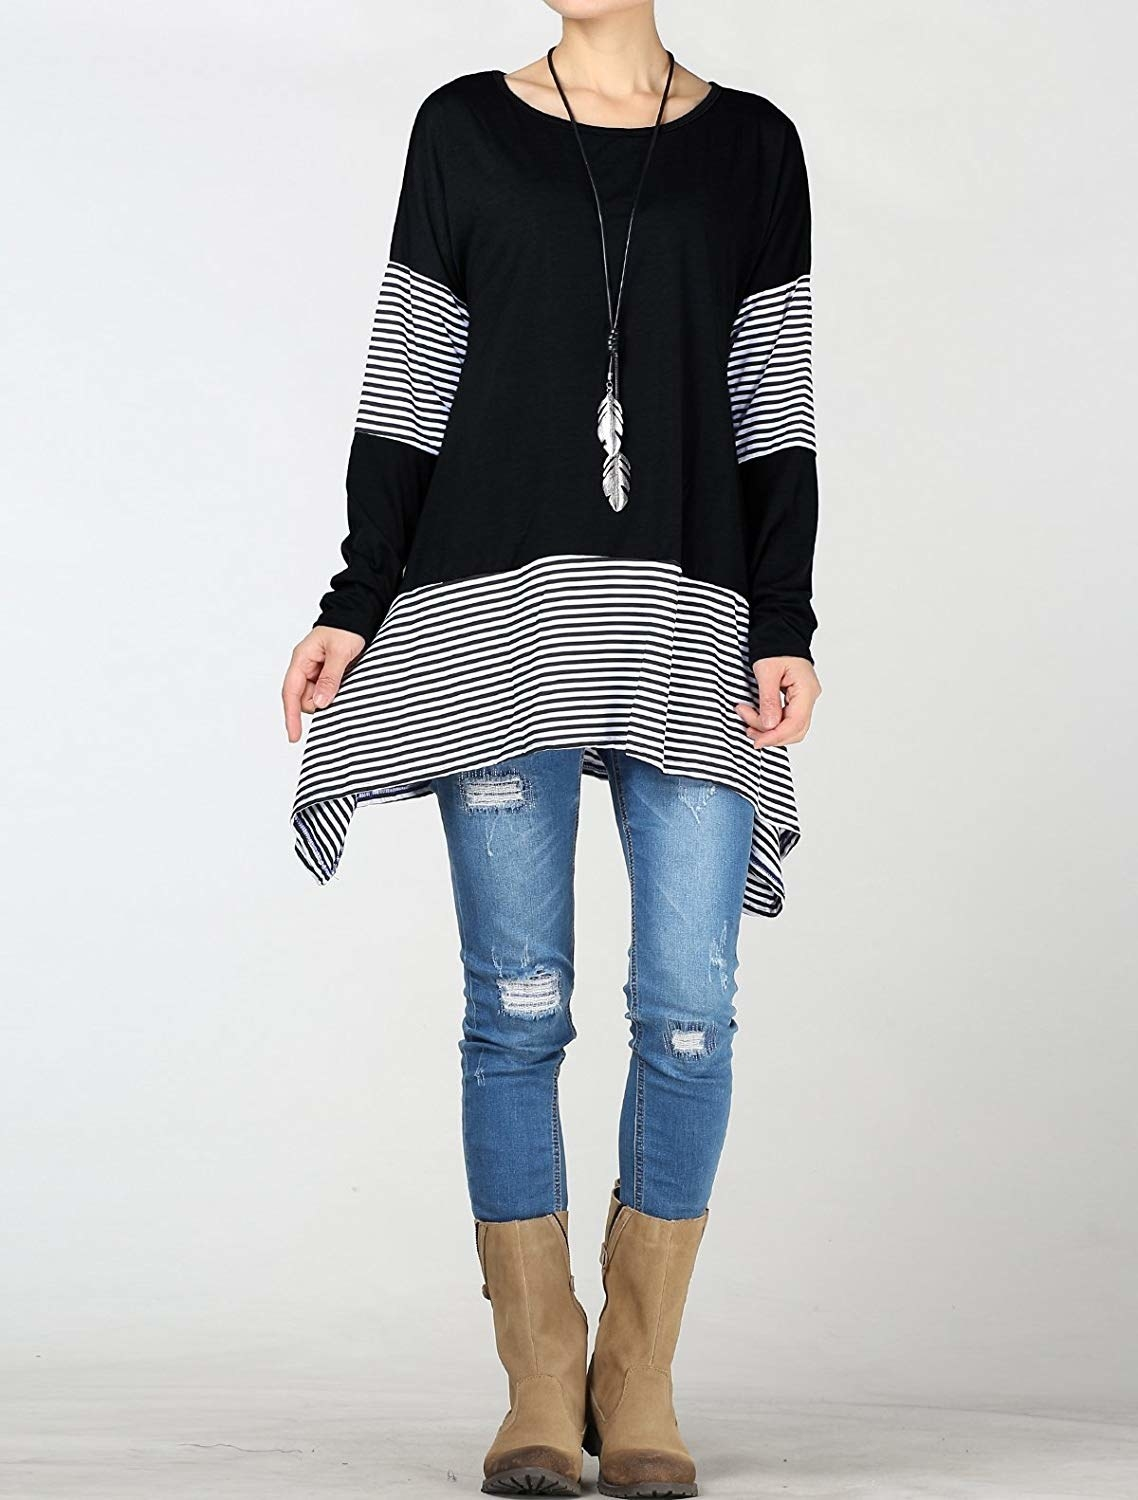 a model wearing the top in black with white stripes on the sleeves and at the bottom of the shirt